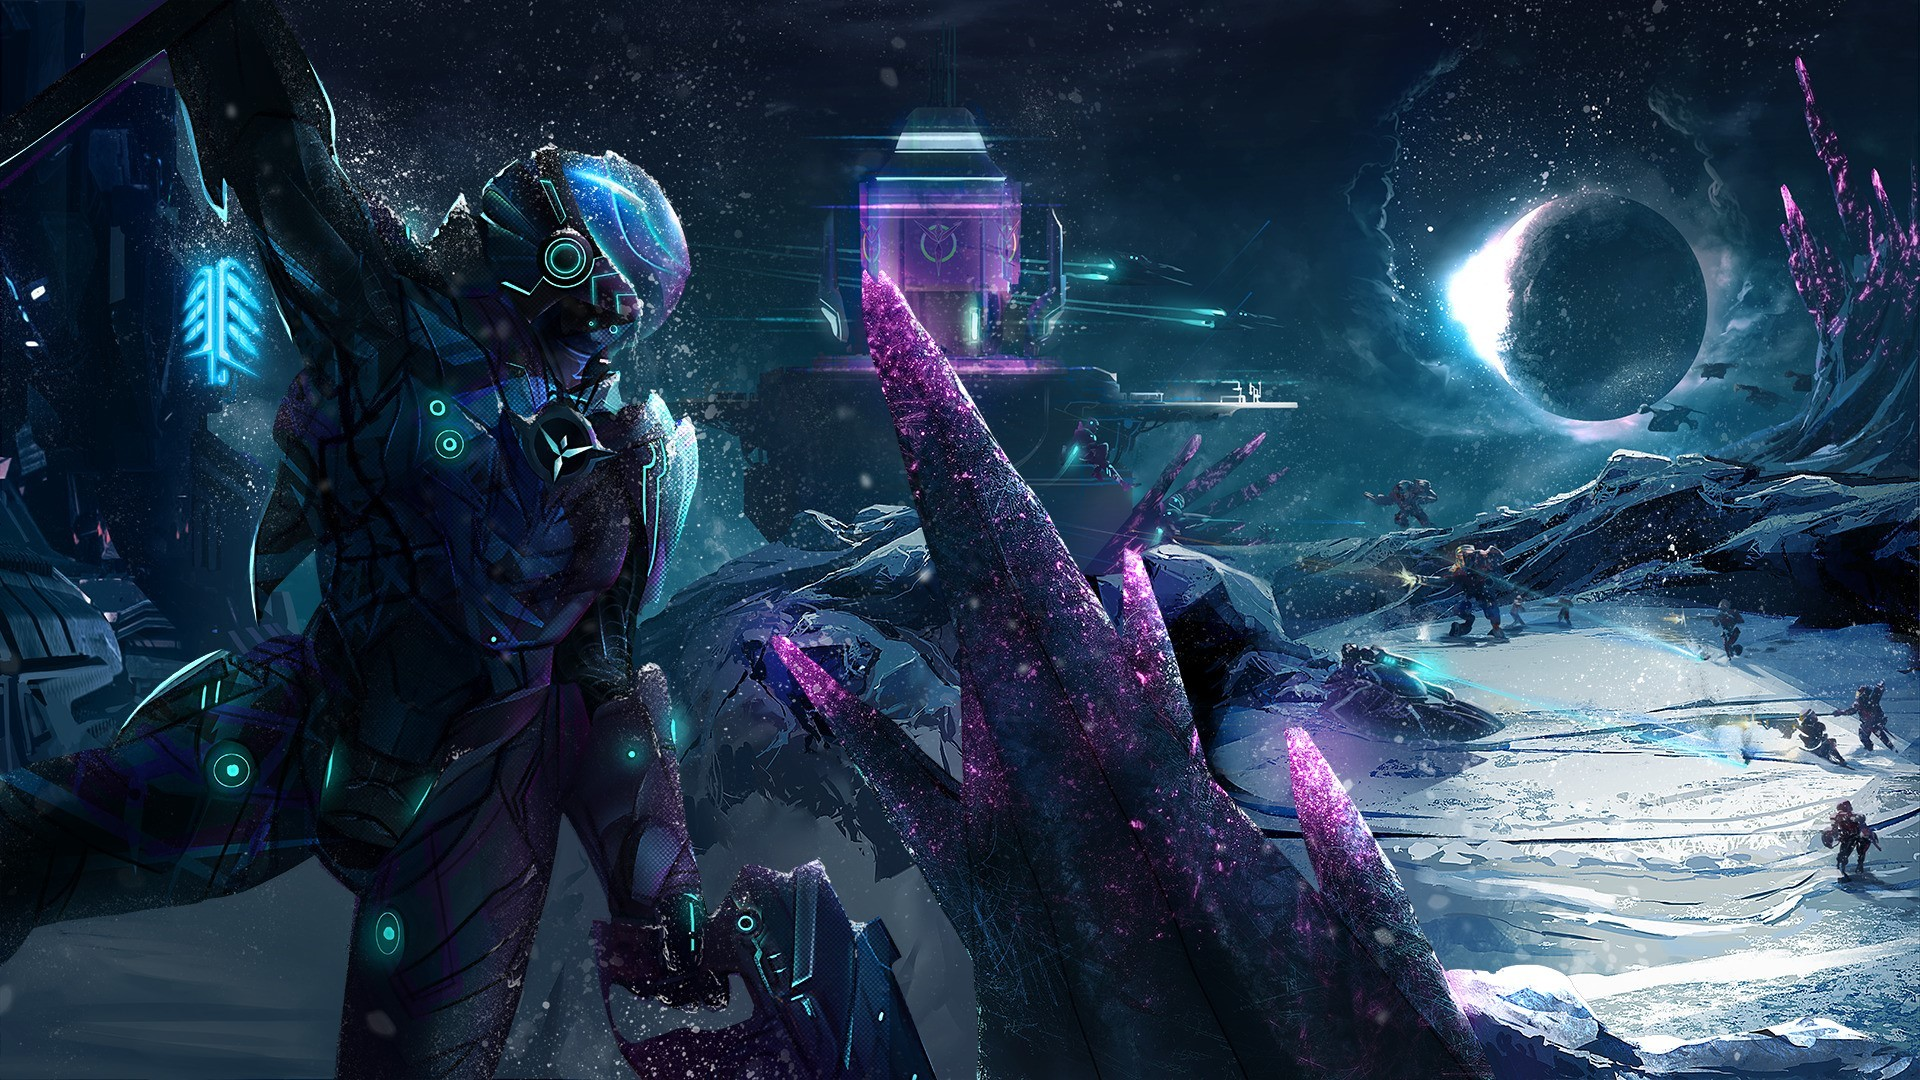 Res: 1920x1080, futuristic battle space ice spaceship robot planetside 2 vanu sovereignty  wallpaper and background